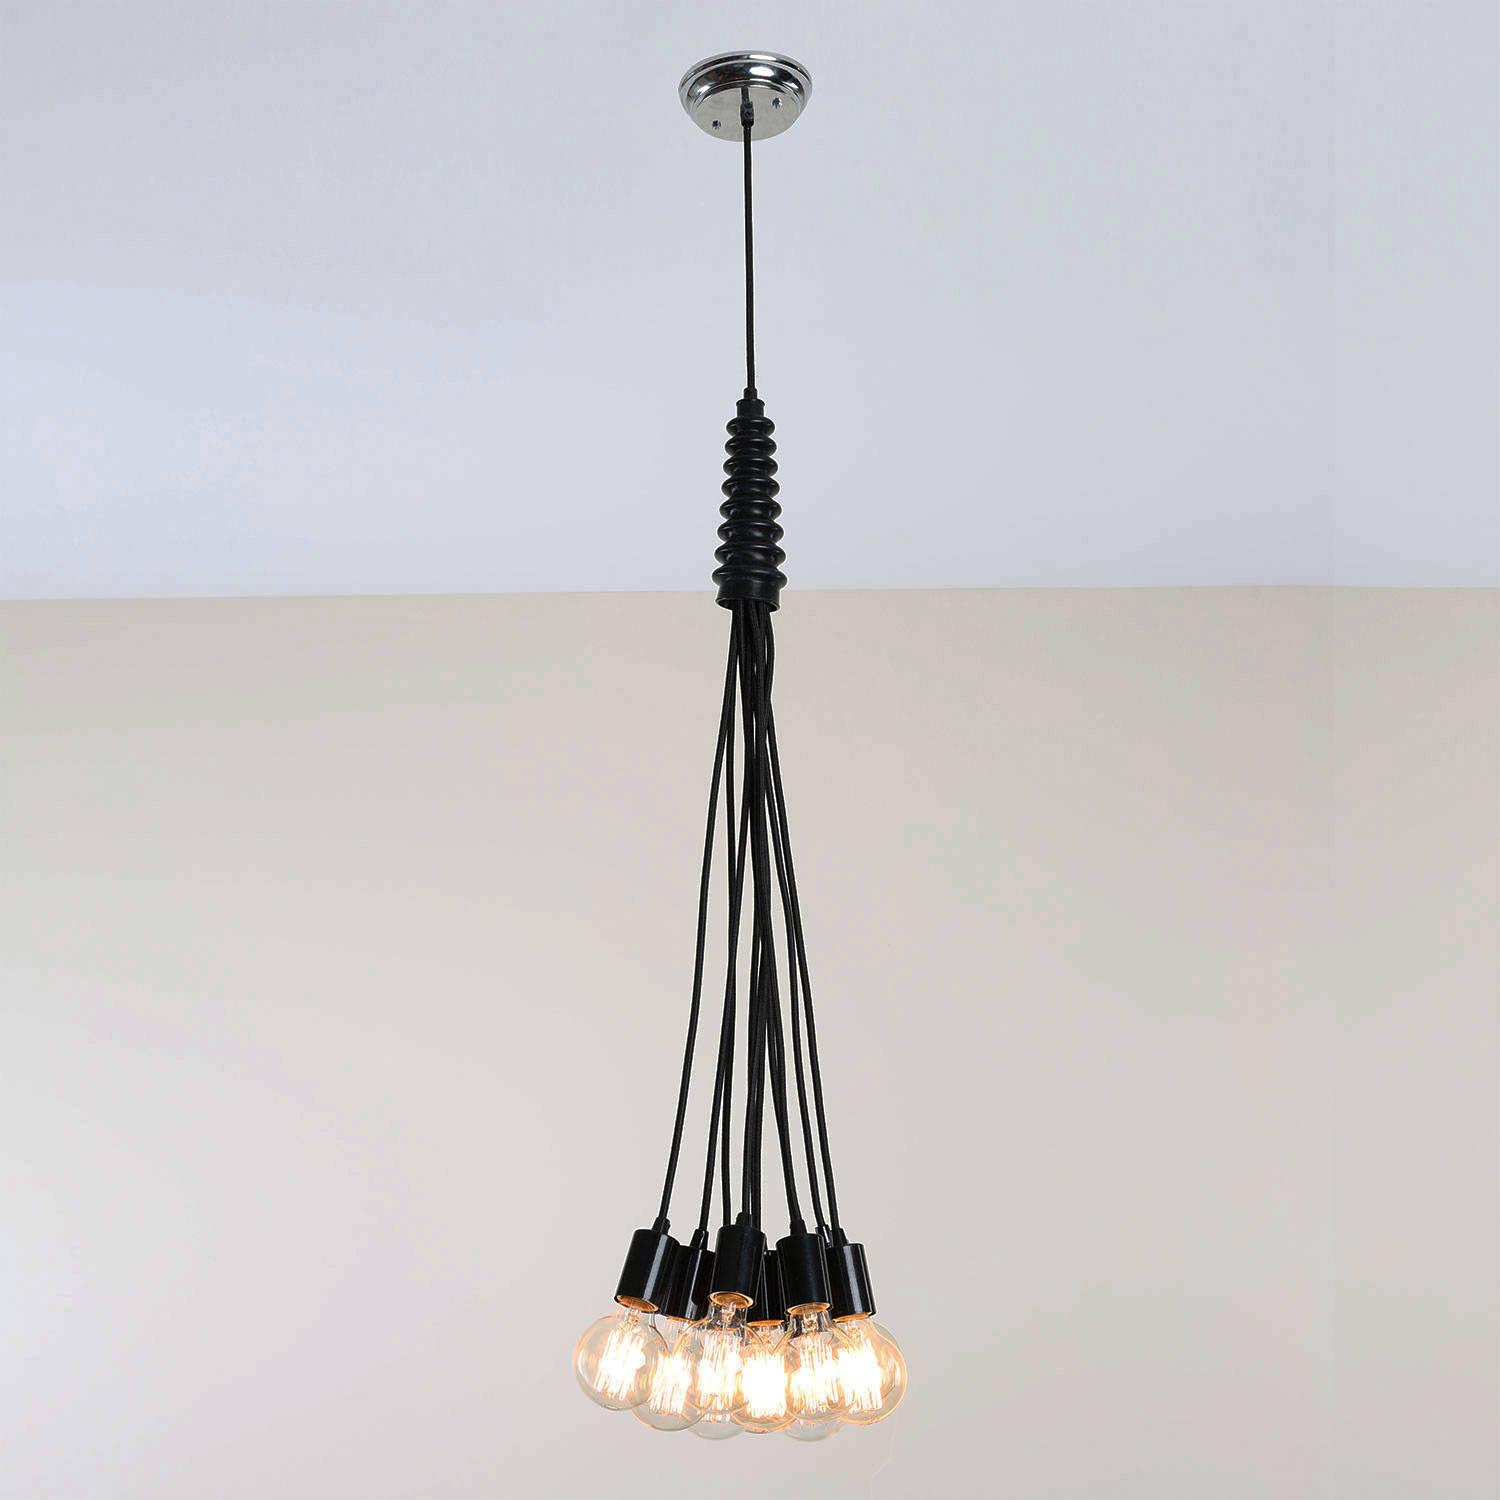 Lights Ceiling Lights Chandeliers – Bulbs for Chandeliers